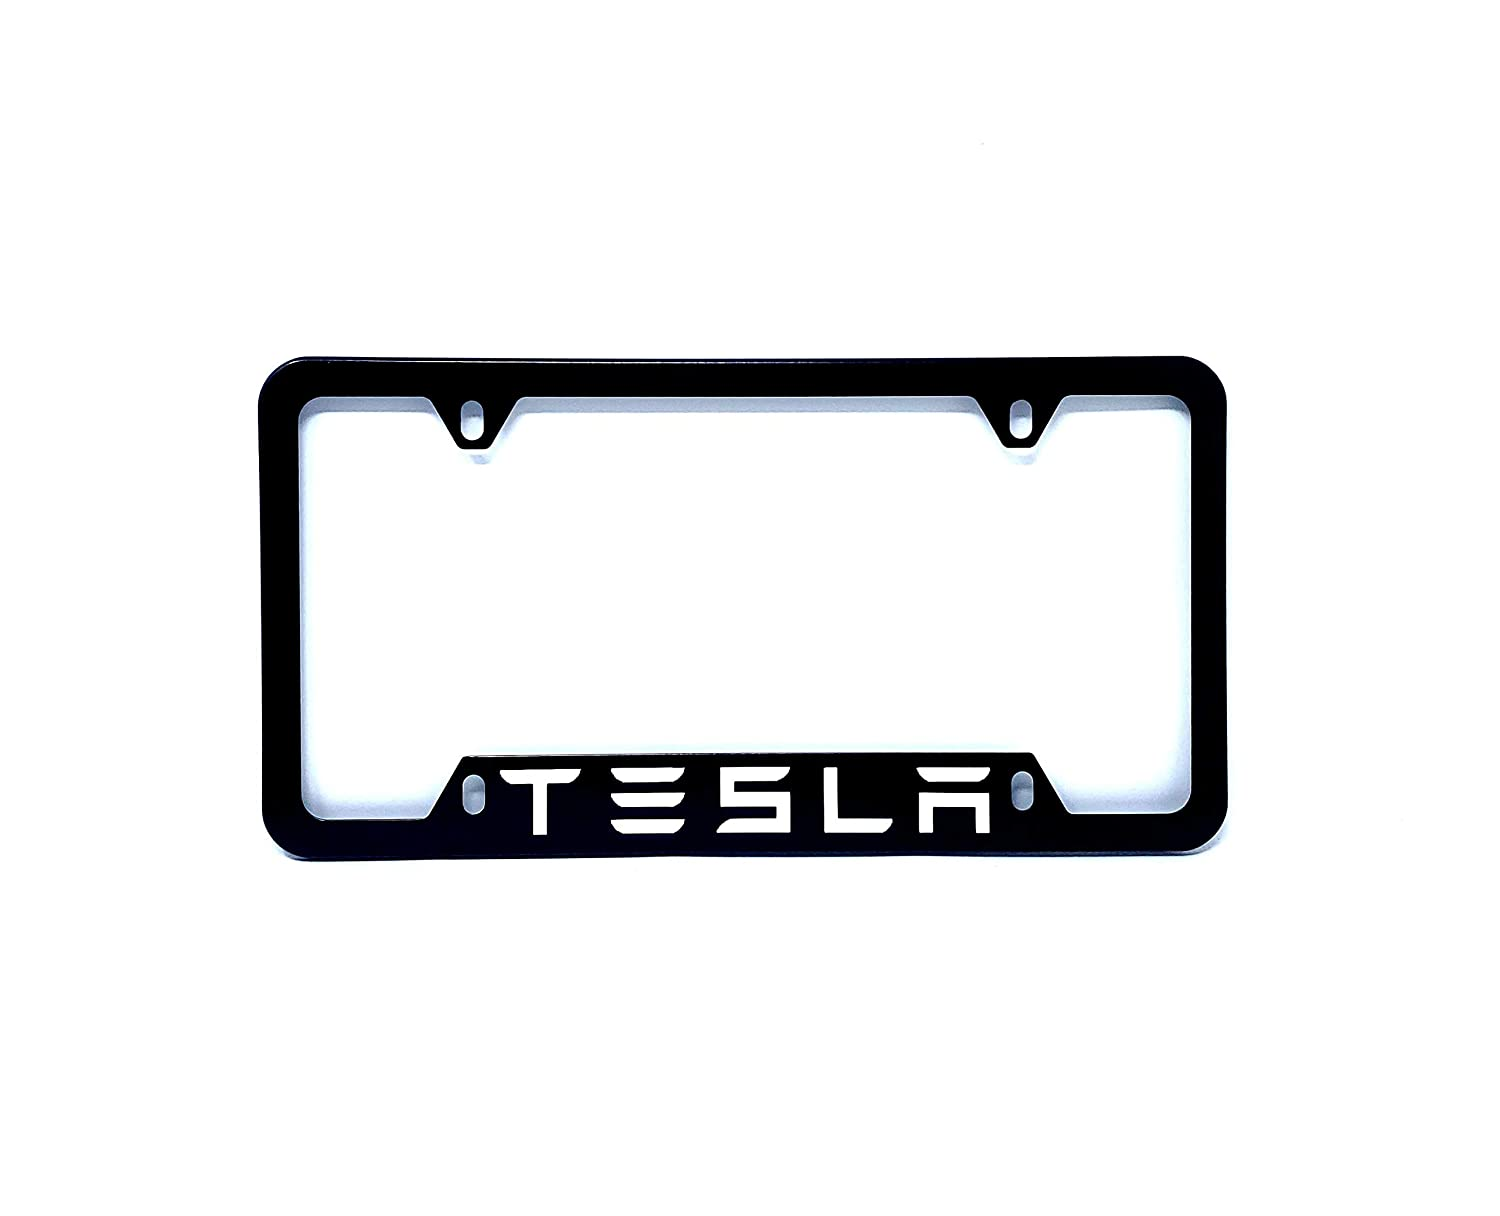 RENGVO pack of 1 BLACK License Plate Cover Frame Plate Aluminum Holder with Screws High Quality For MODEL 3 X S etc